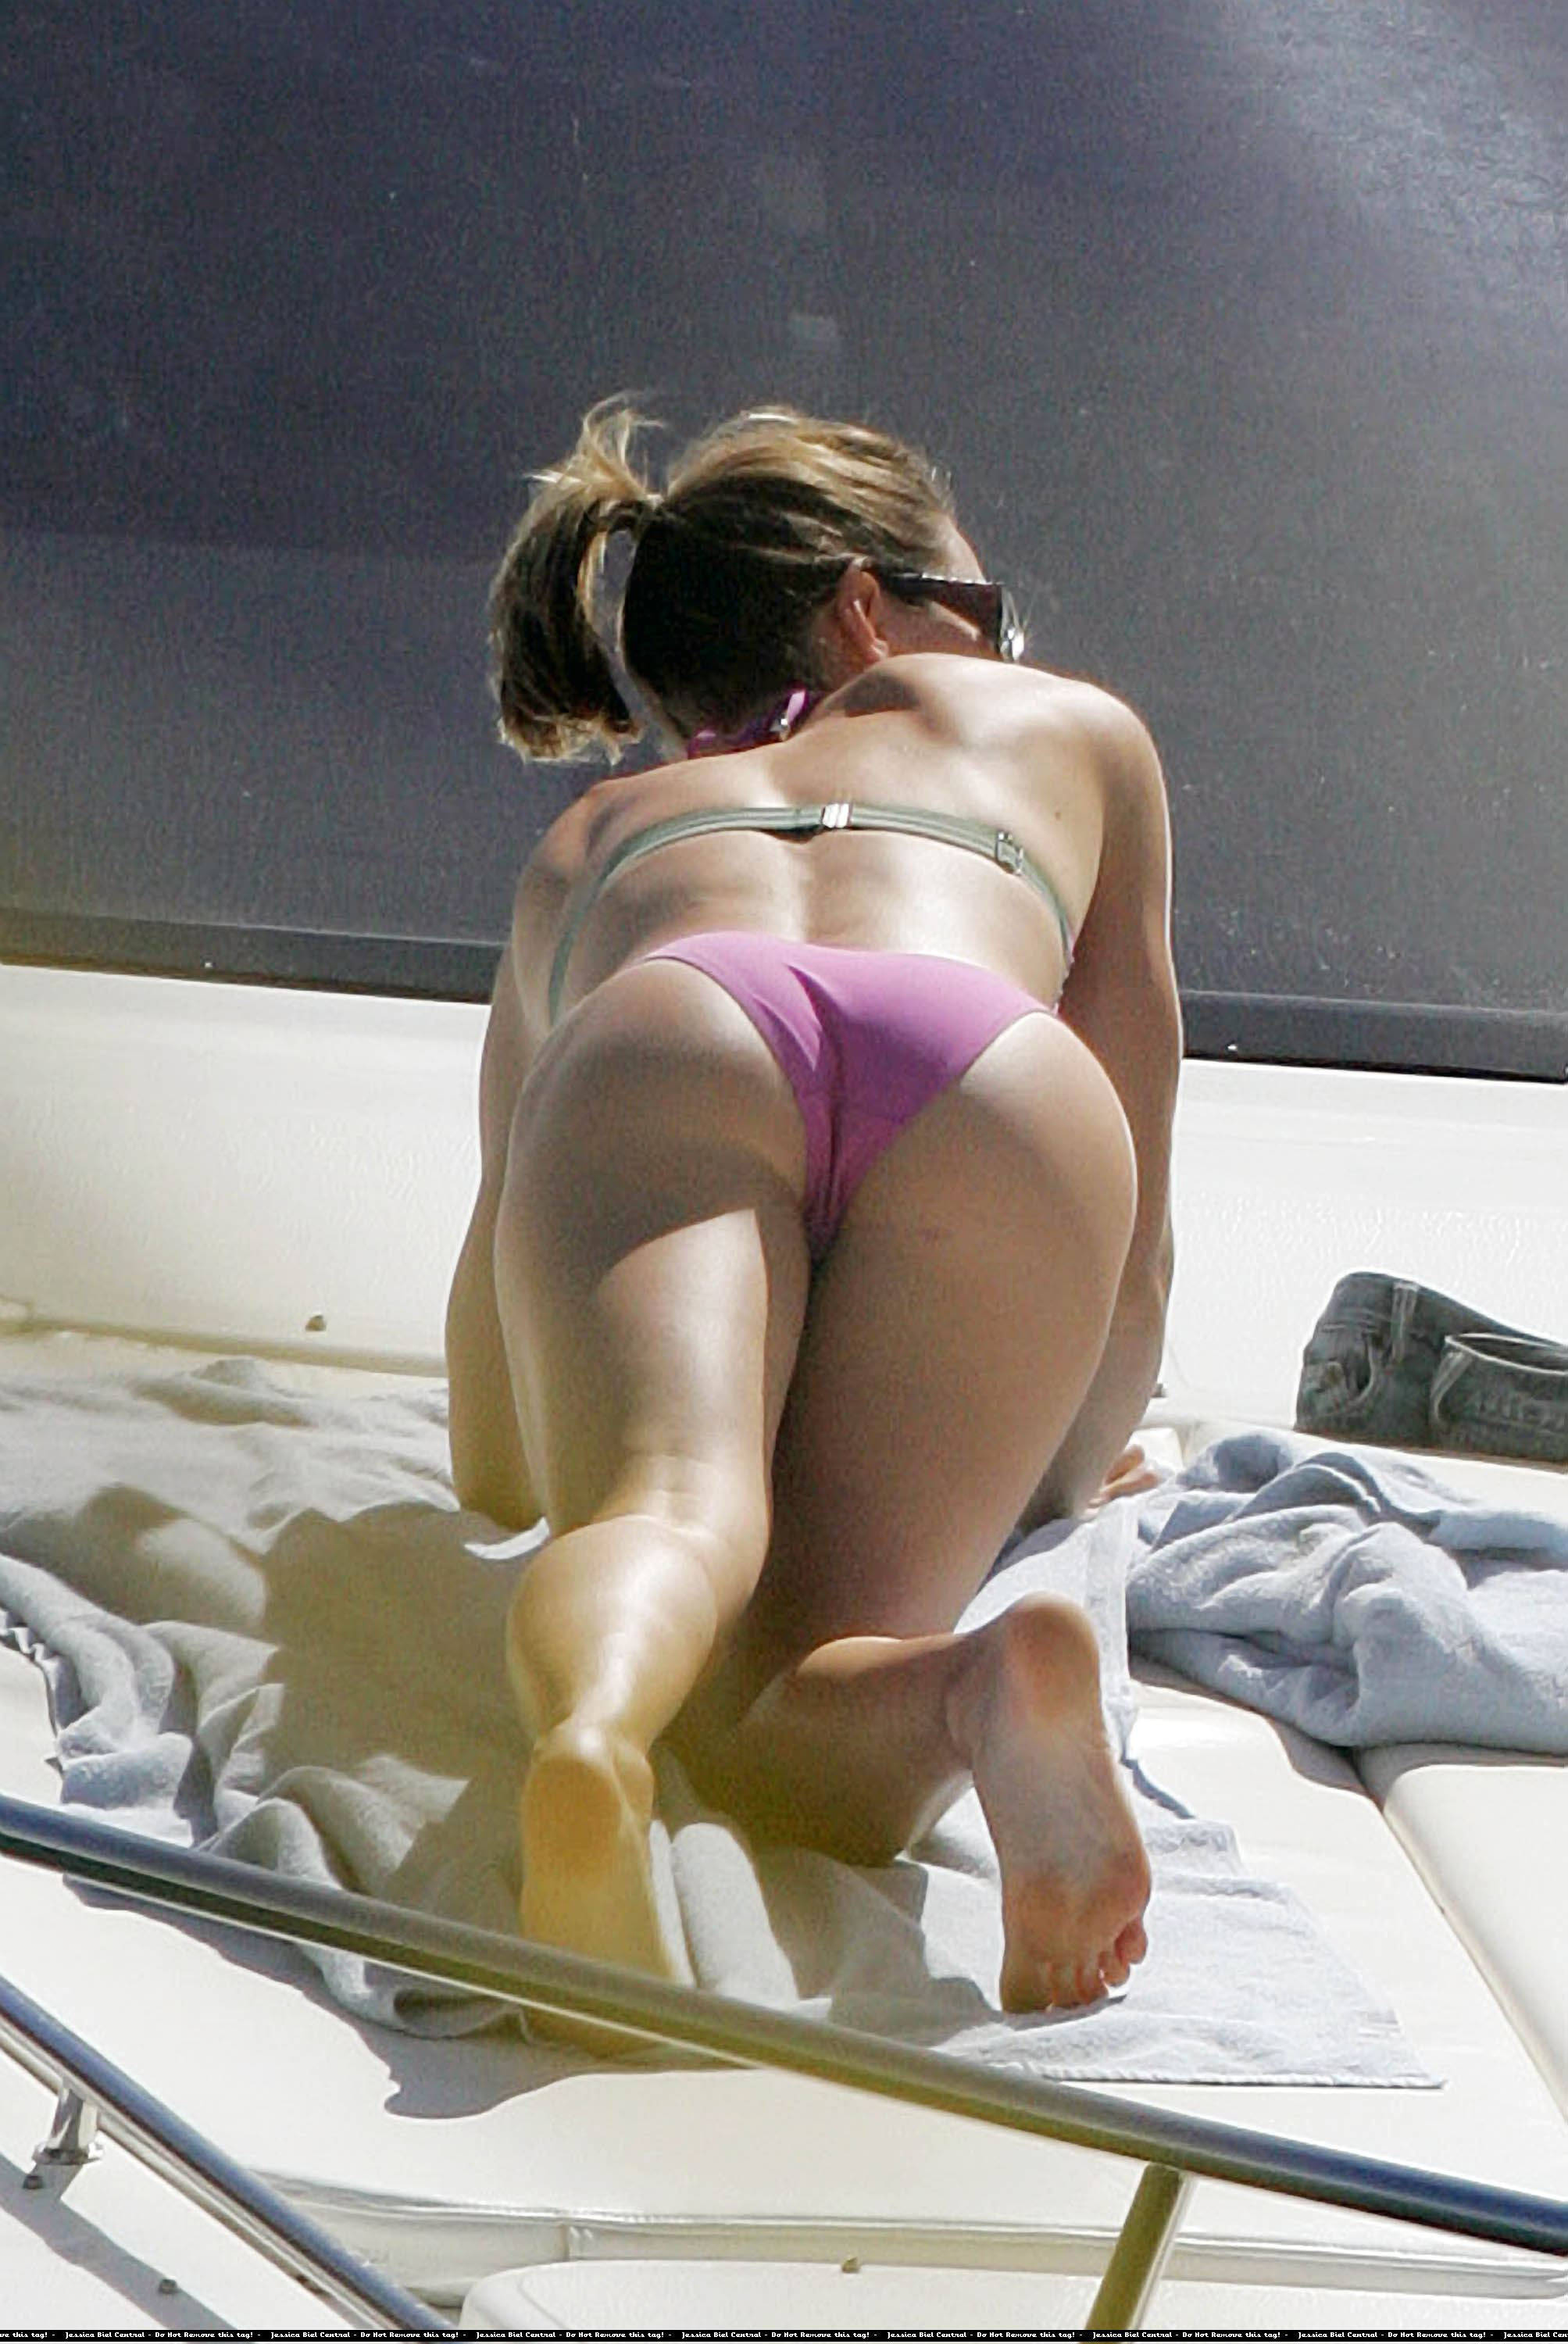 HQ Bikini Celebs and more